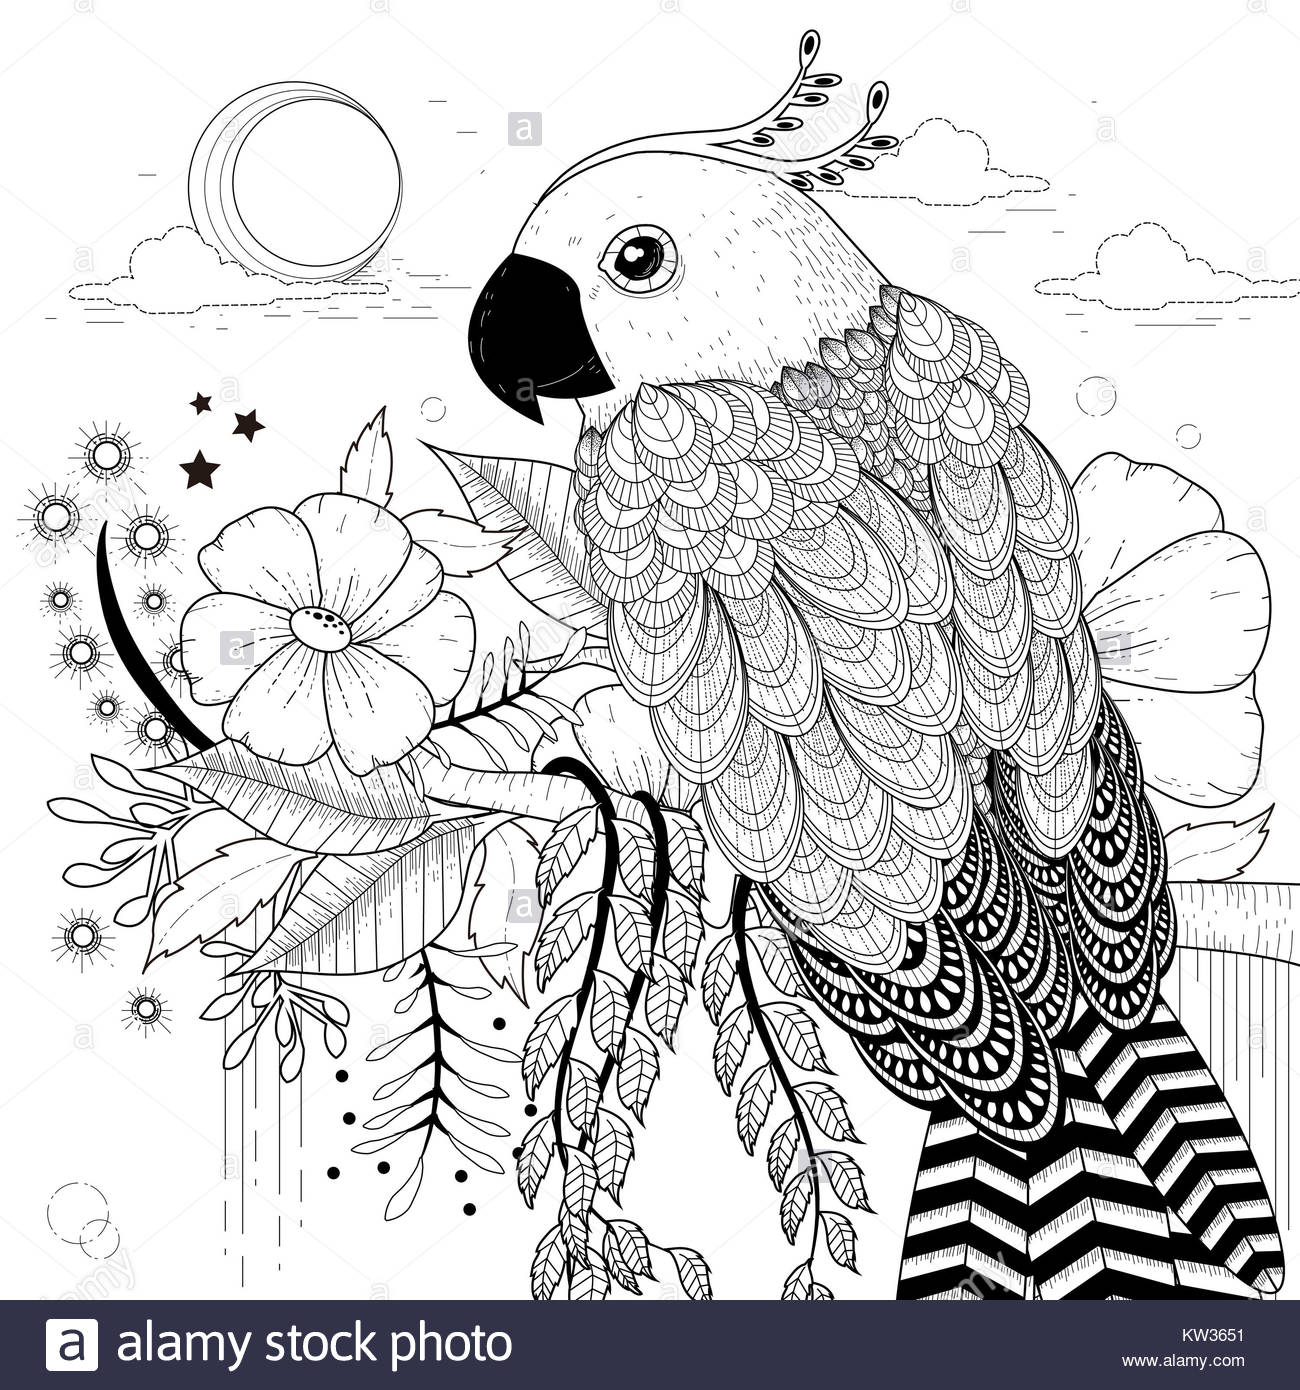 Lovely Parrot Coloring Page In Stock Photos & Lovely Parrot Coloring ...